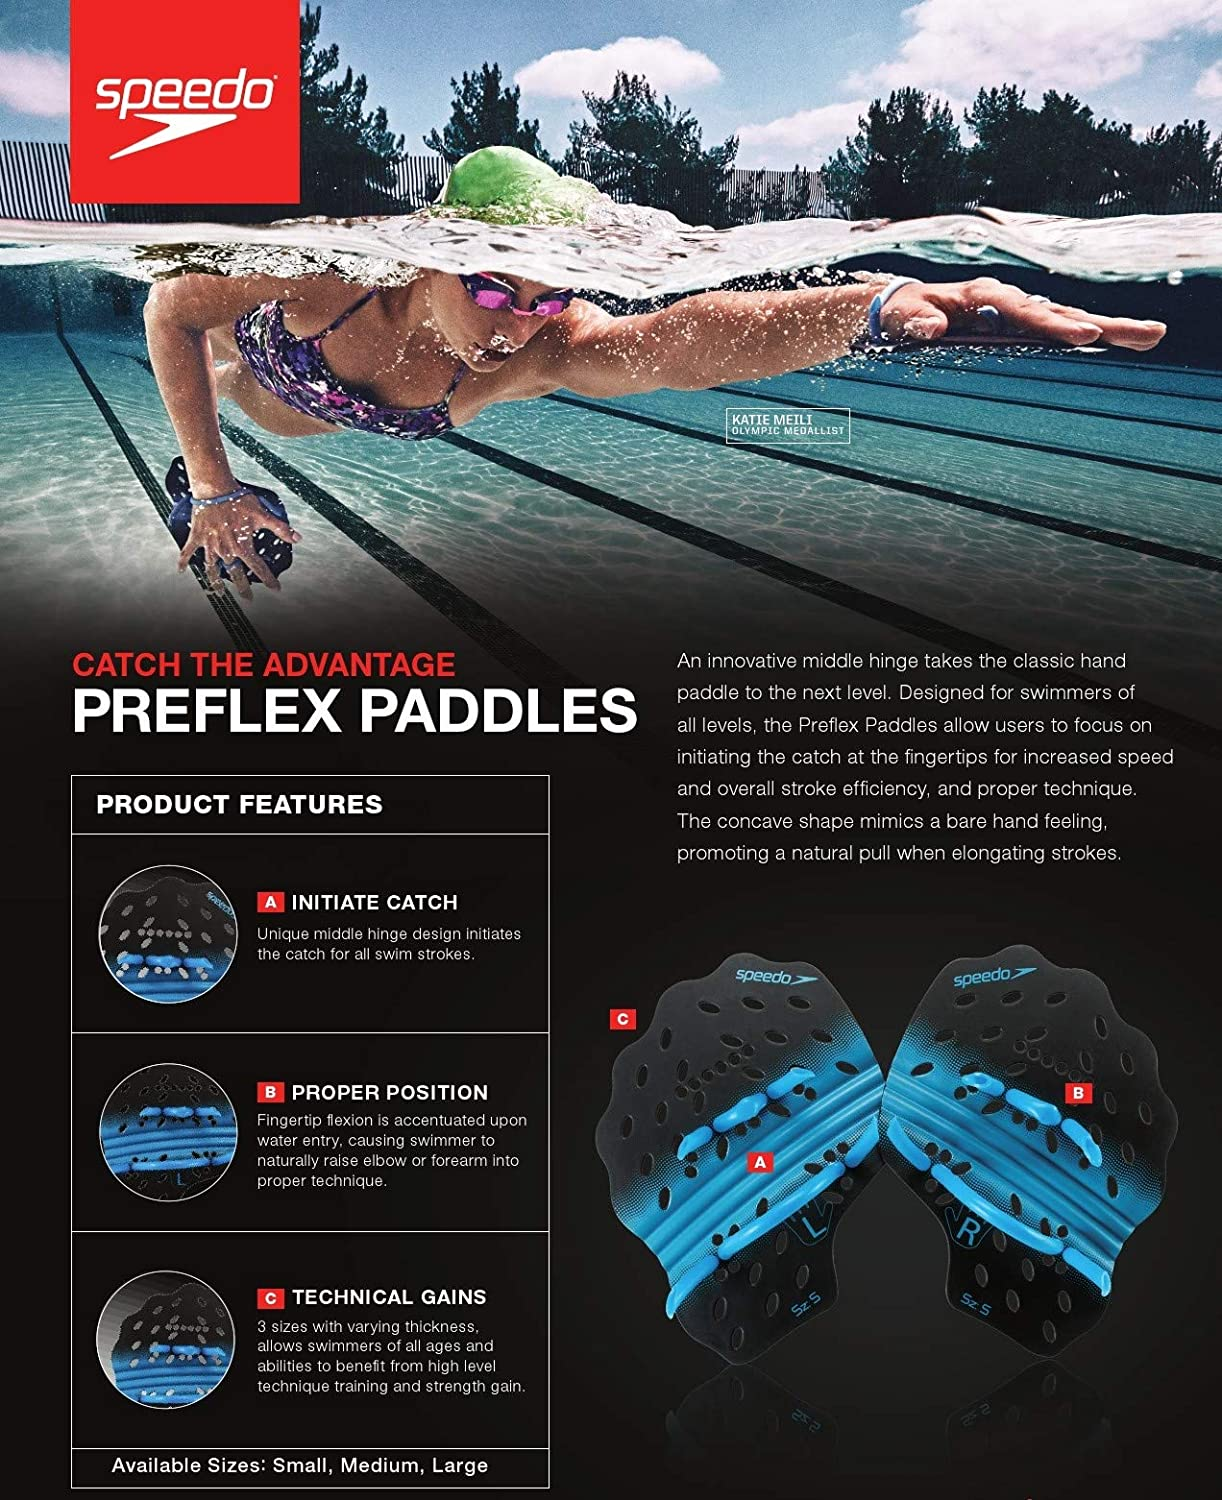 Amazon.com: Speedo Preflex - Palas de natación: Sports ...